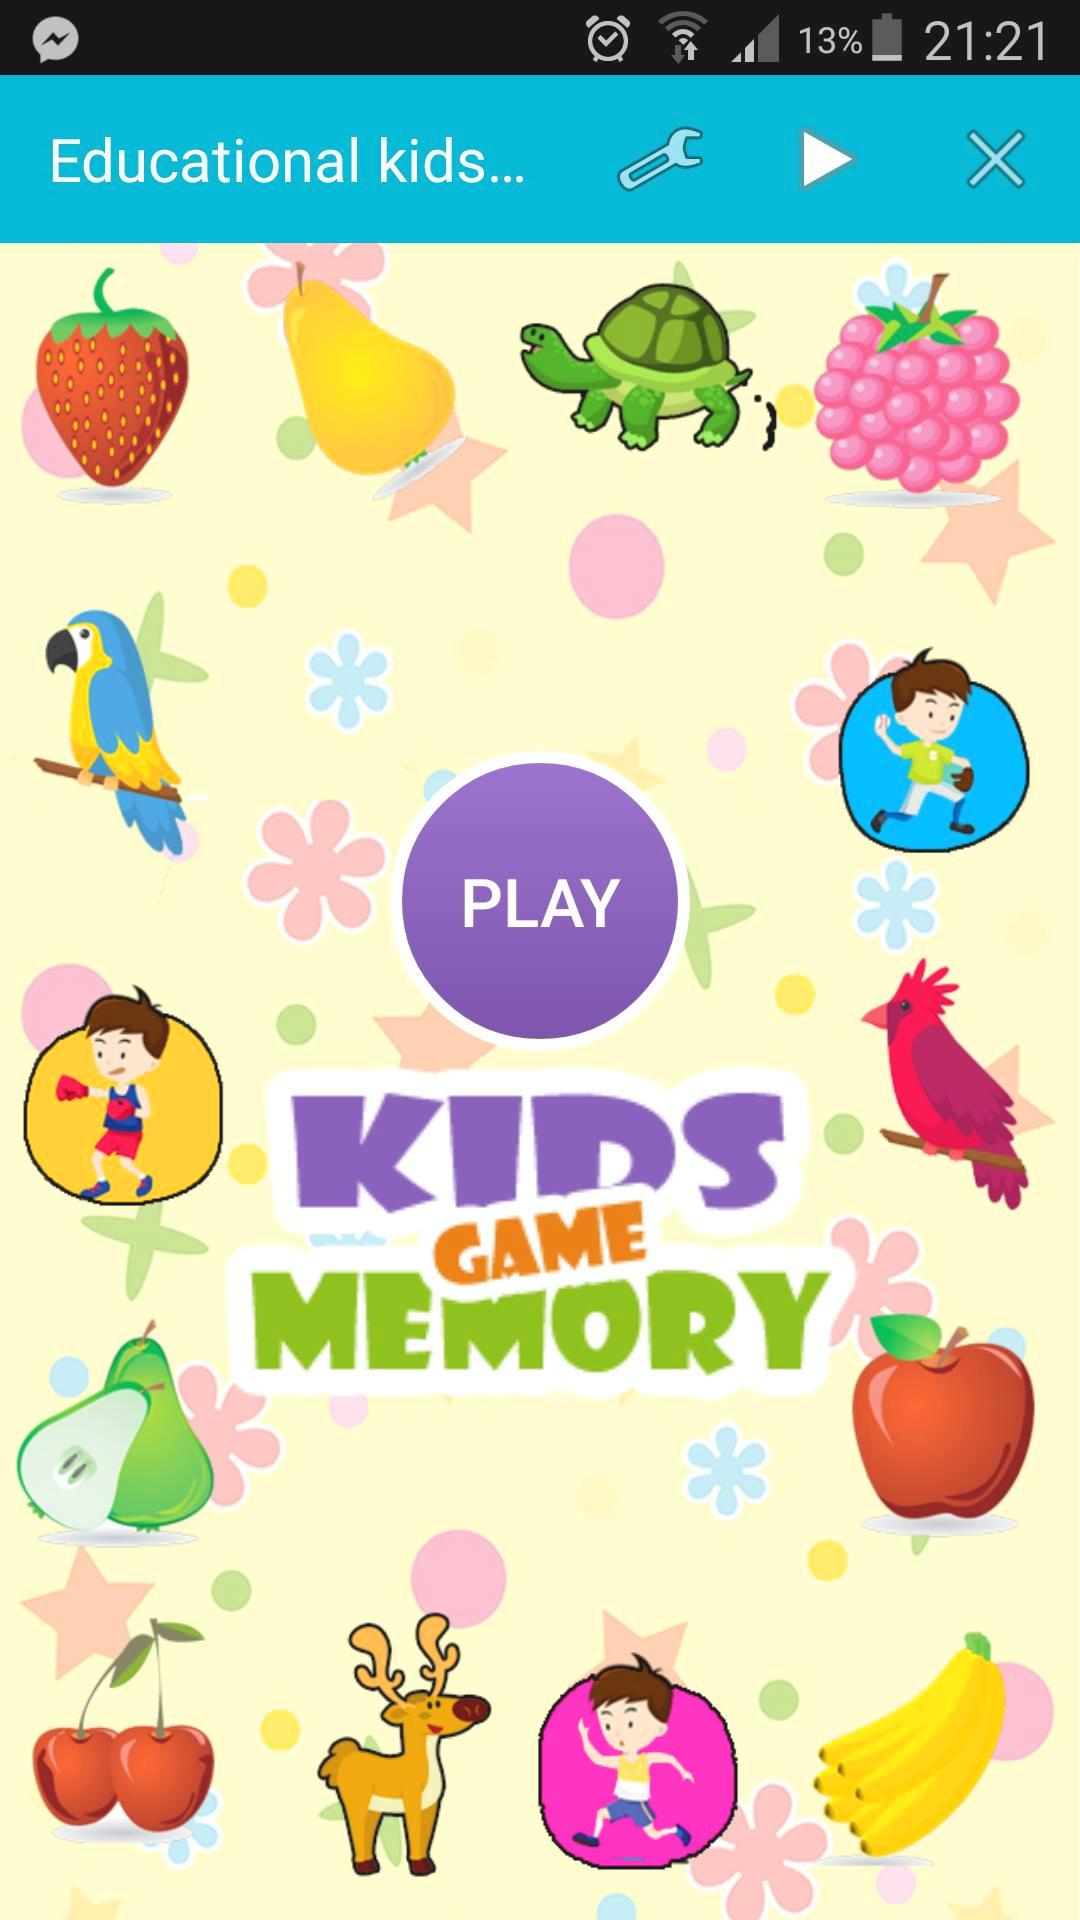 Ppap Jeux De Mémoire For Android - Apk Download destiné Jeux De Mimoire